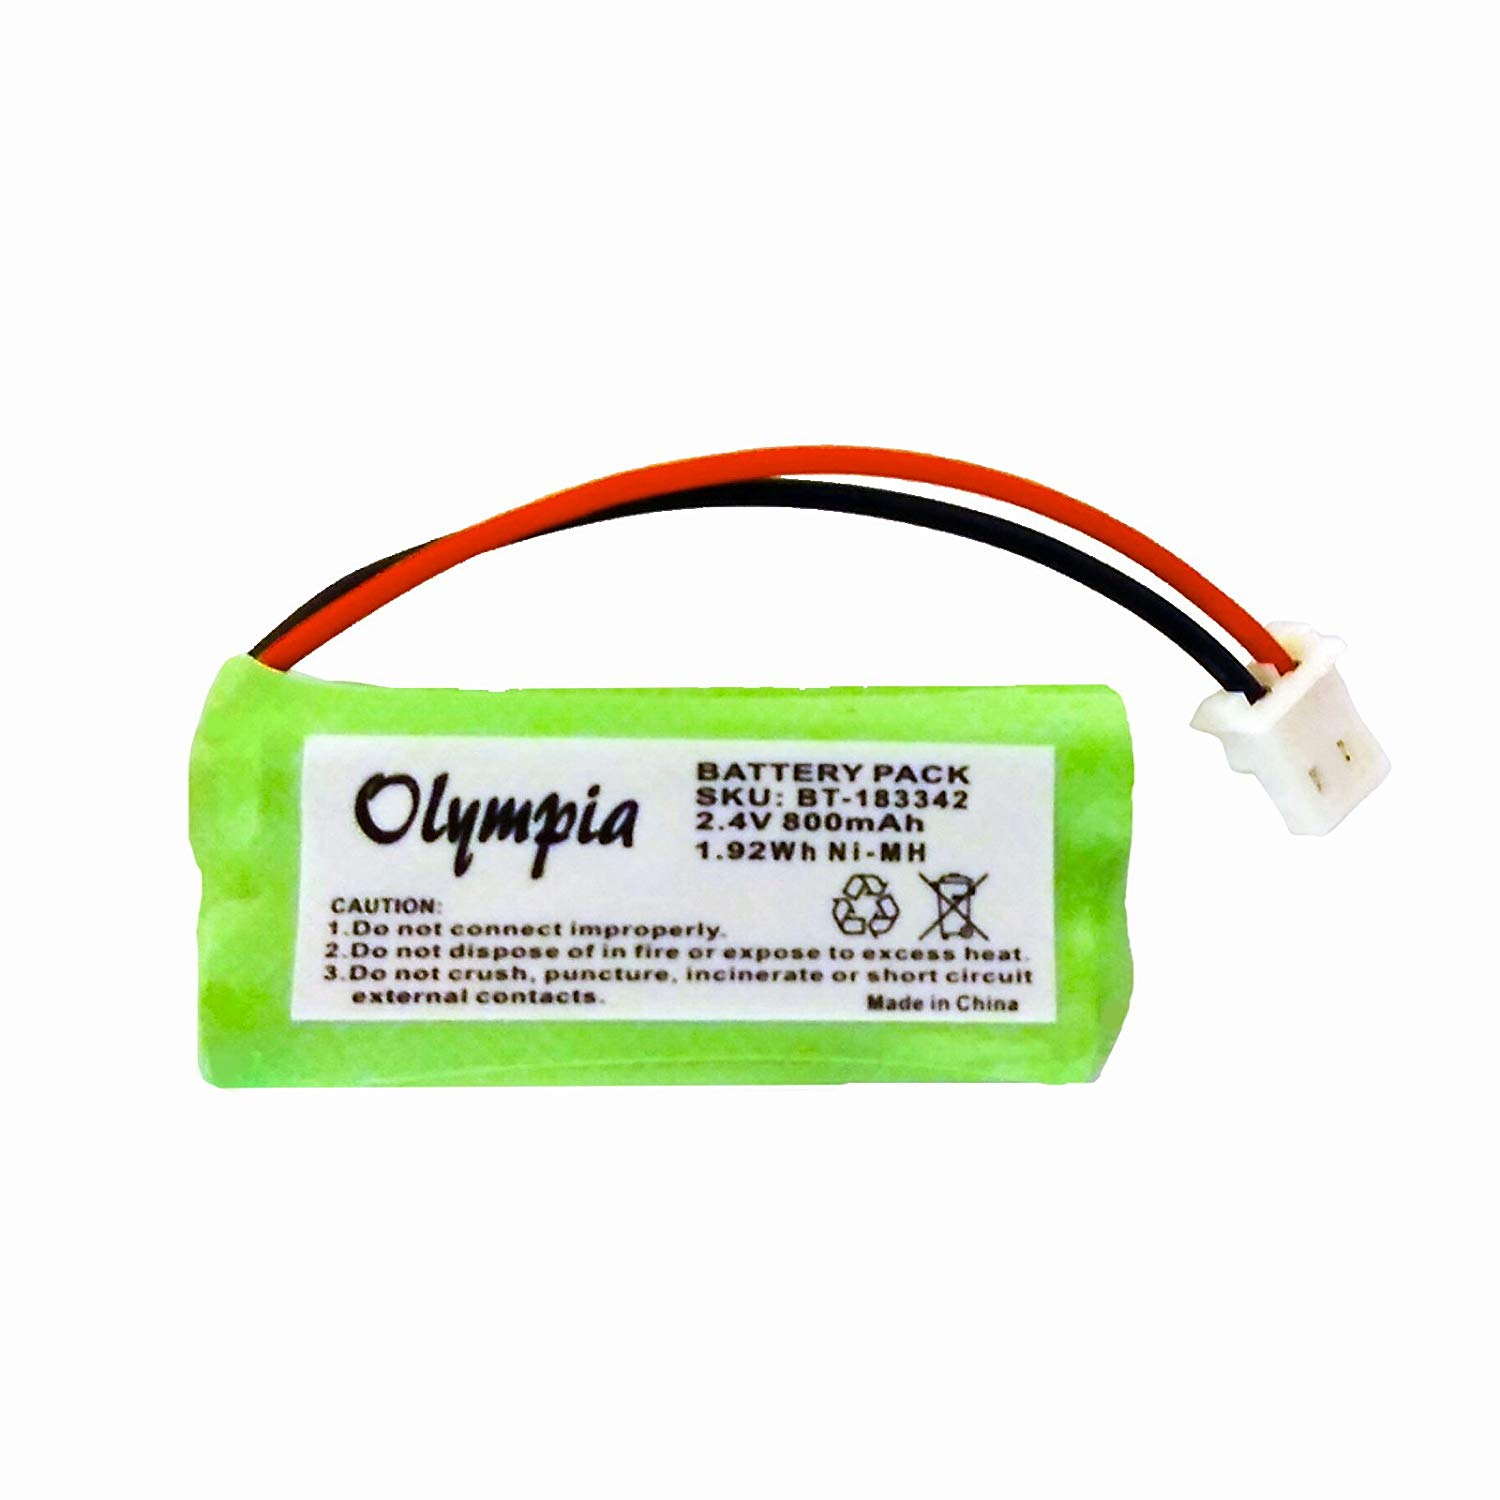 HQRP 3-Pack Battery for AT/&T//Lucent 80-5848-00-00 8058480000 27910 00102 SB67108 TL74258 TL74308 TL74358 TL74408 TL74458 TL77008 TL72108 E5910 E5643 E5643B E5644B E5654B Cordless Phone Coaster